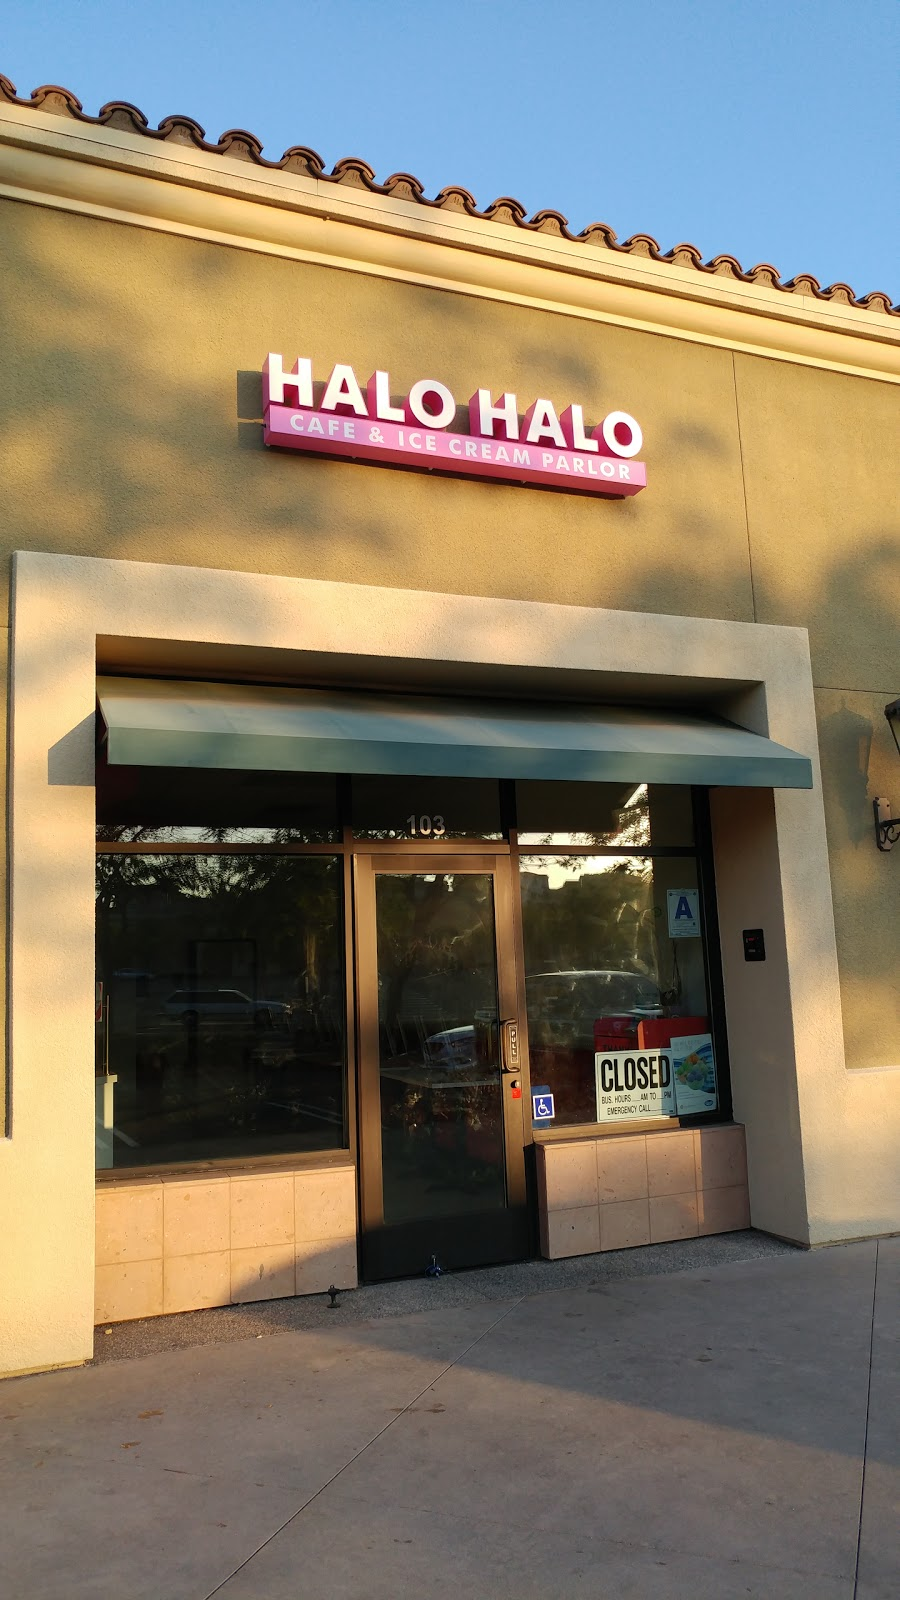 Halo Halo Cafe And Ice Cream Parlor - store  | Photo 3 of 10 | Address: 2310 Proctor Valley Rd #103, Chula Vista, CA 91914, USA | Phone: (619) 946-4878